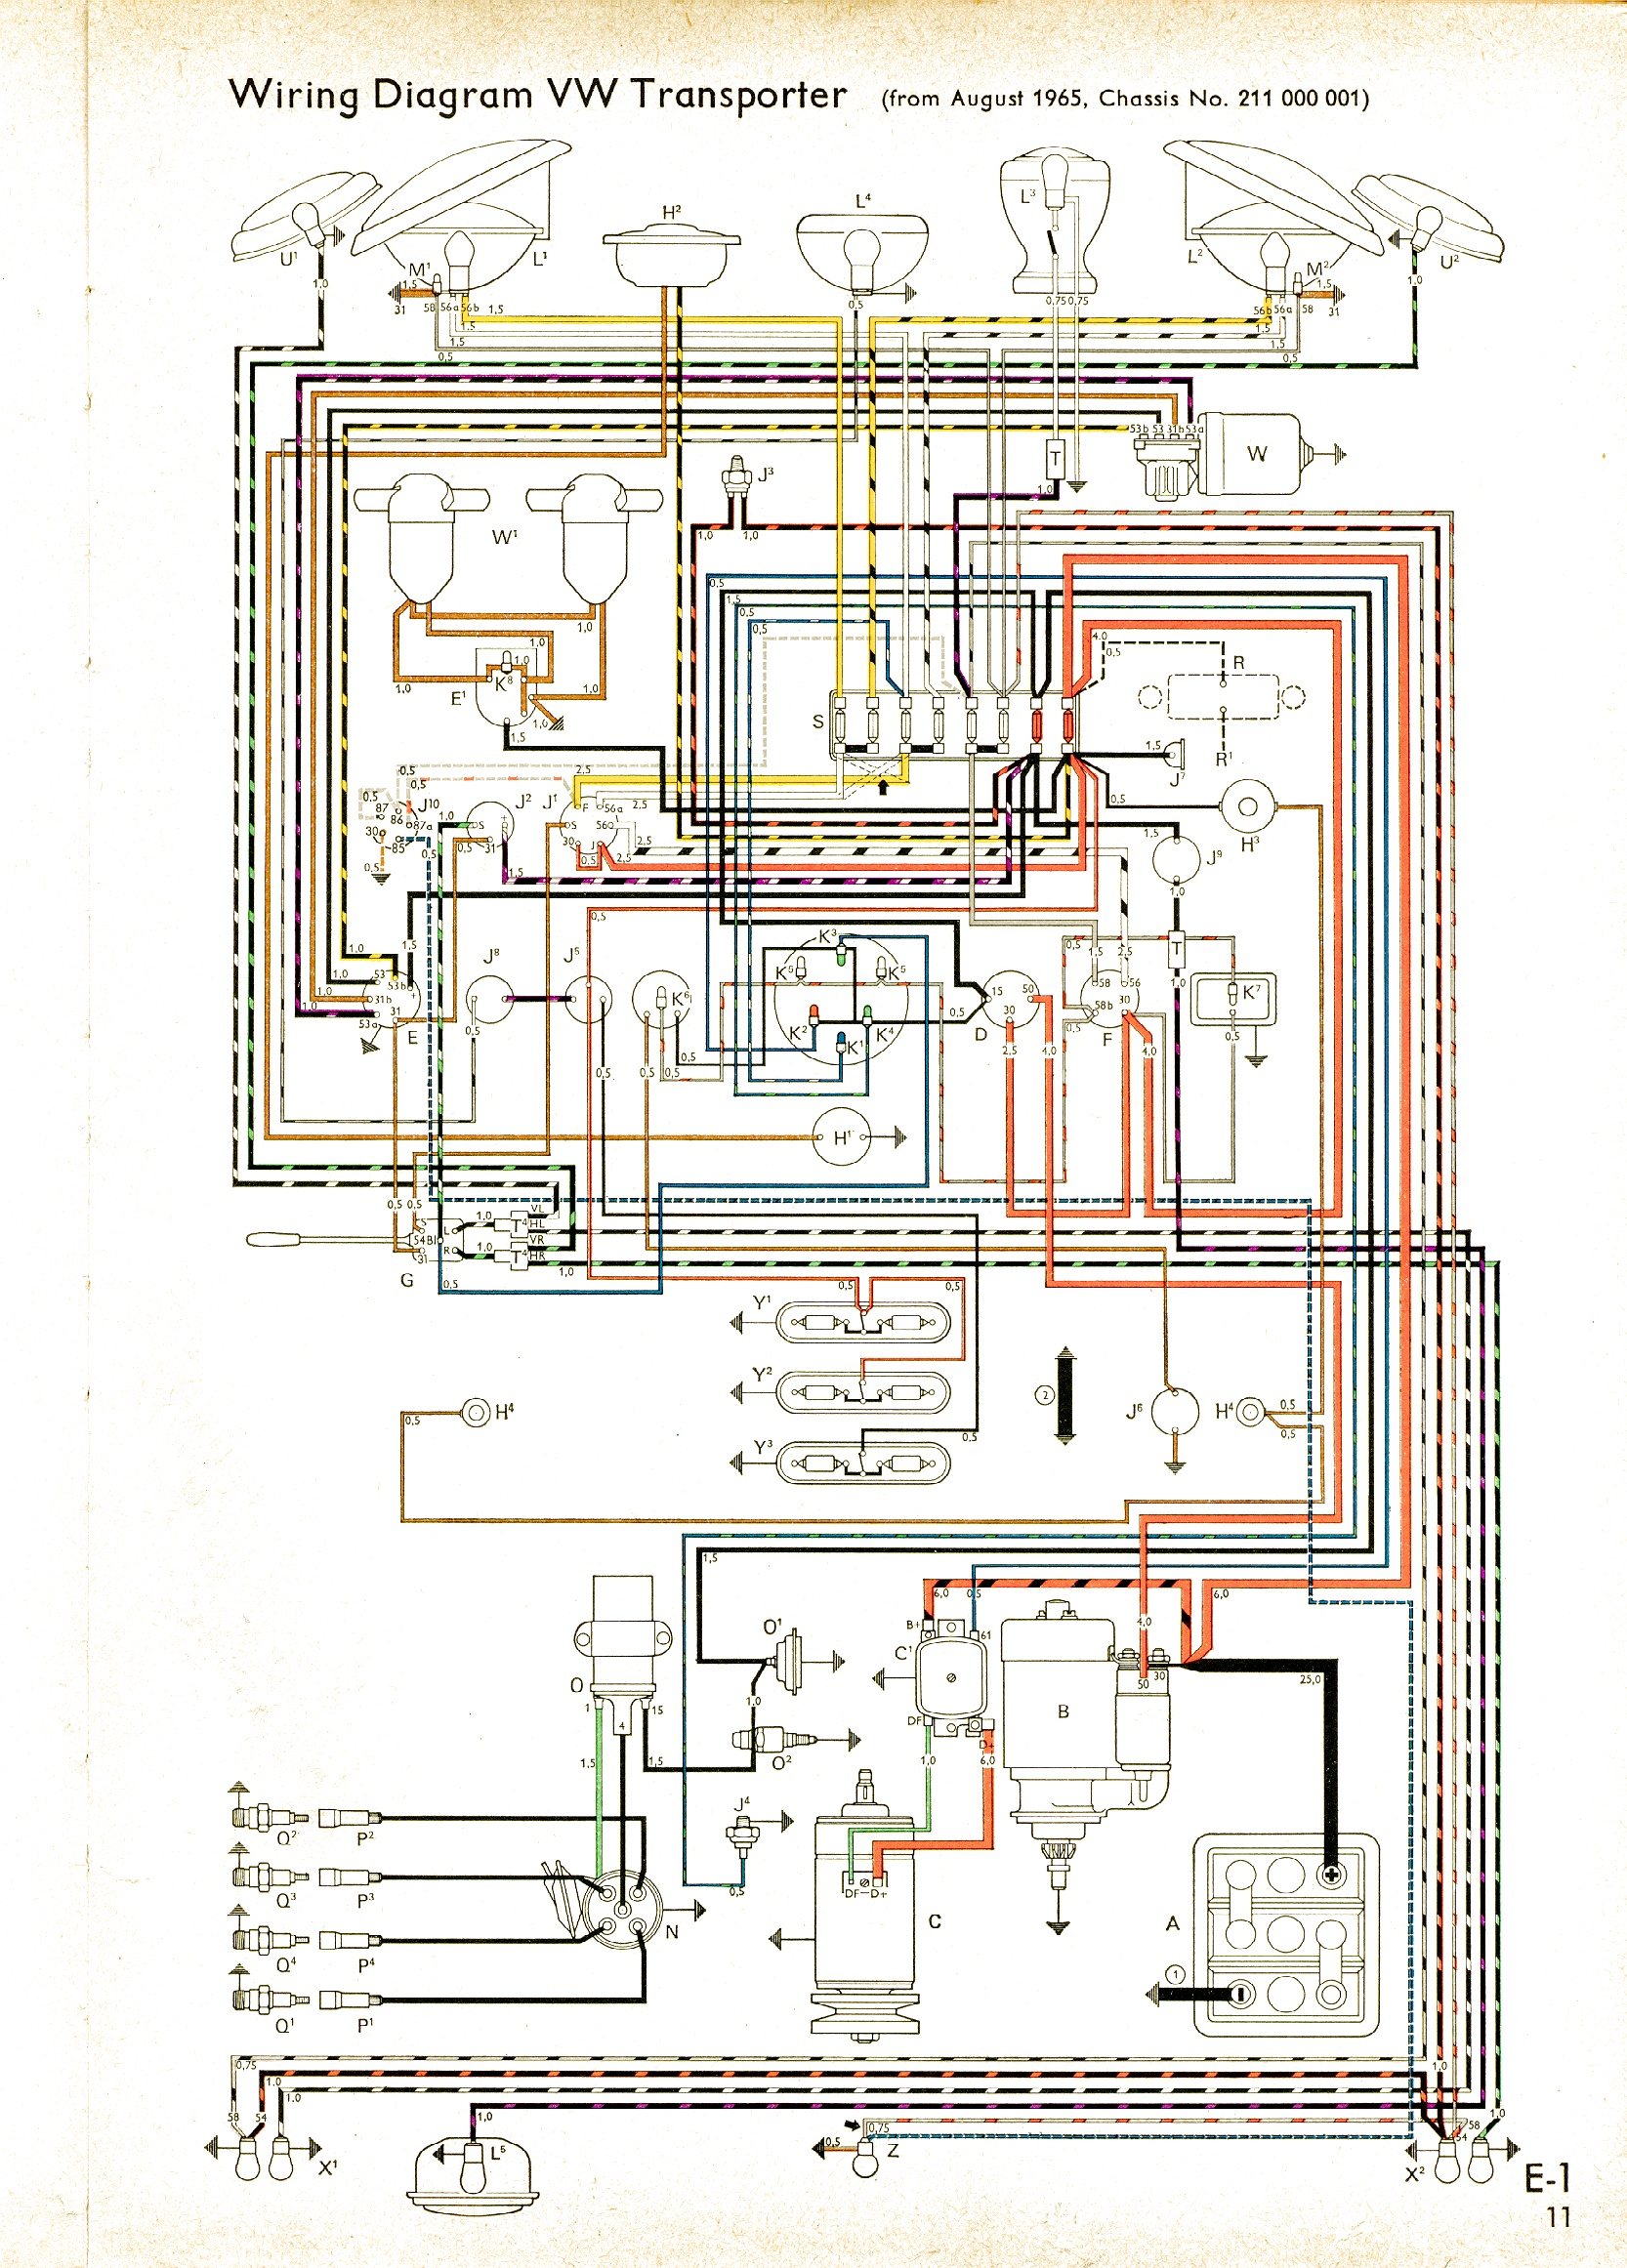 1977 eagle bus wiring diagram eagle bus wiring diagram 1973 #1